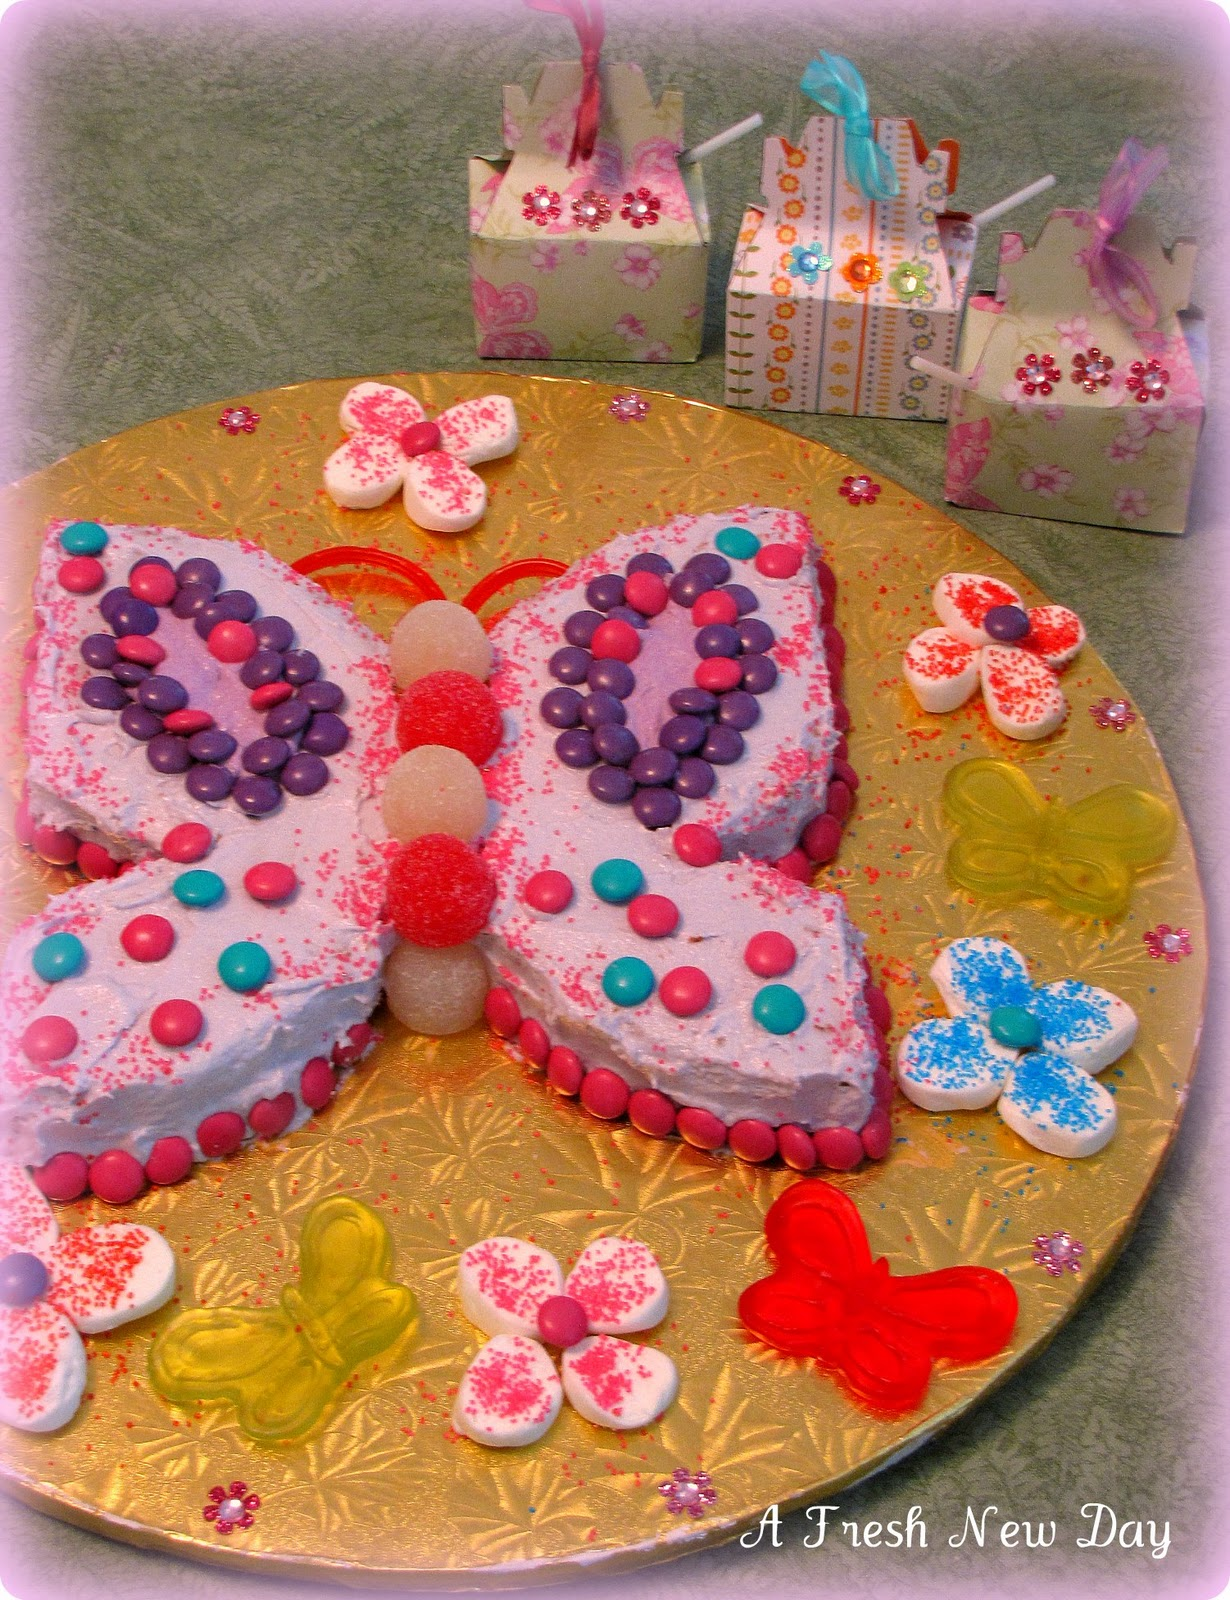 A Fresh New Day: A Butterfly Birthday Cake